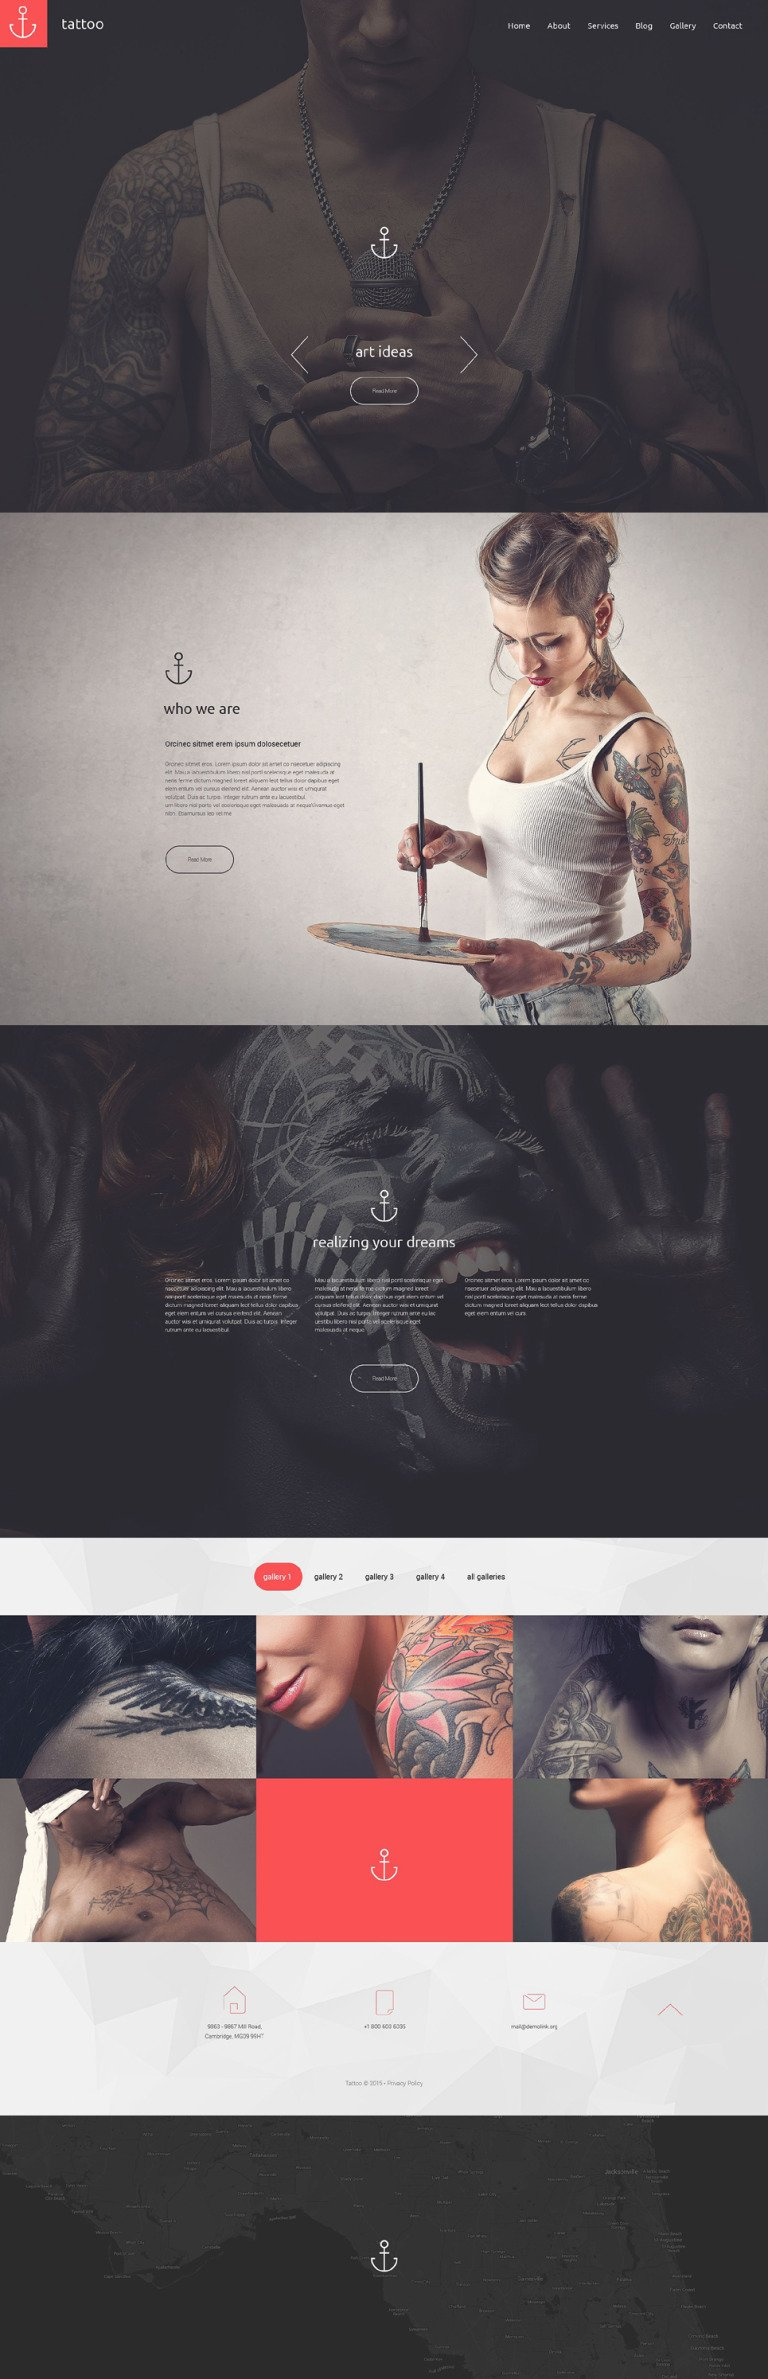 Tattoo Drupal Template New Screenshots BIG